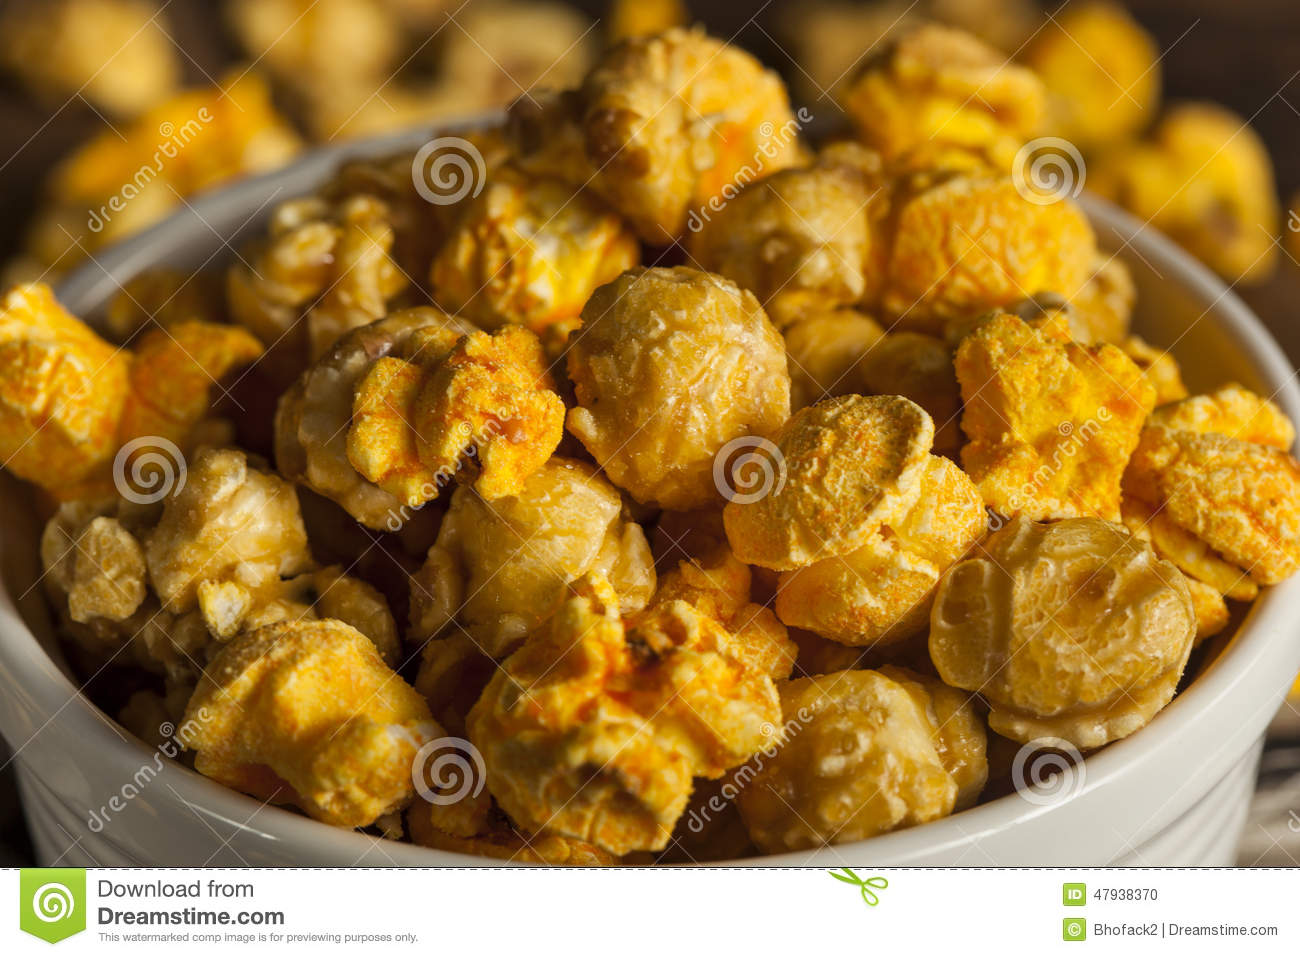 Chicago Style Caramel And Cheese Popcorn Stock Photo - Image: 47938370